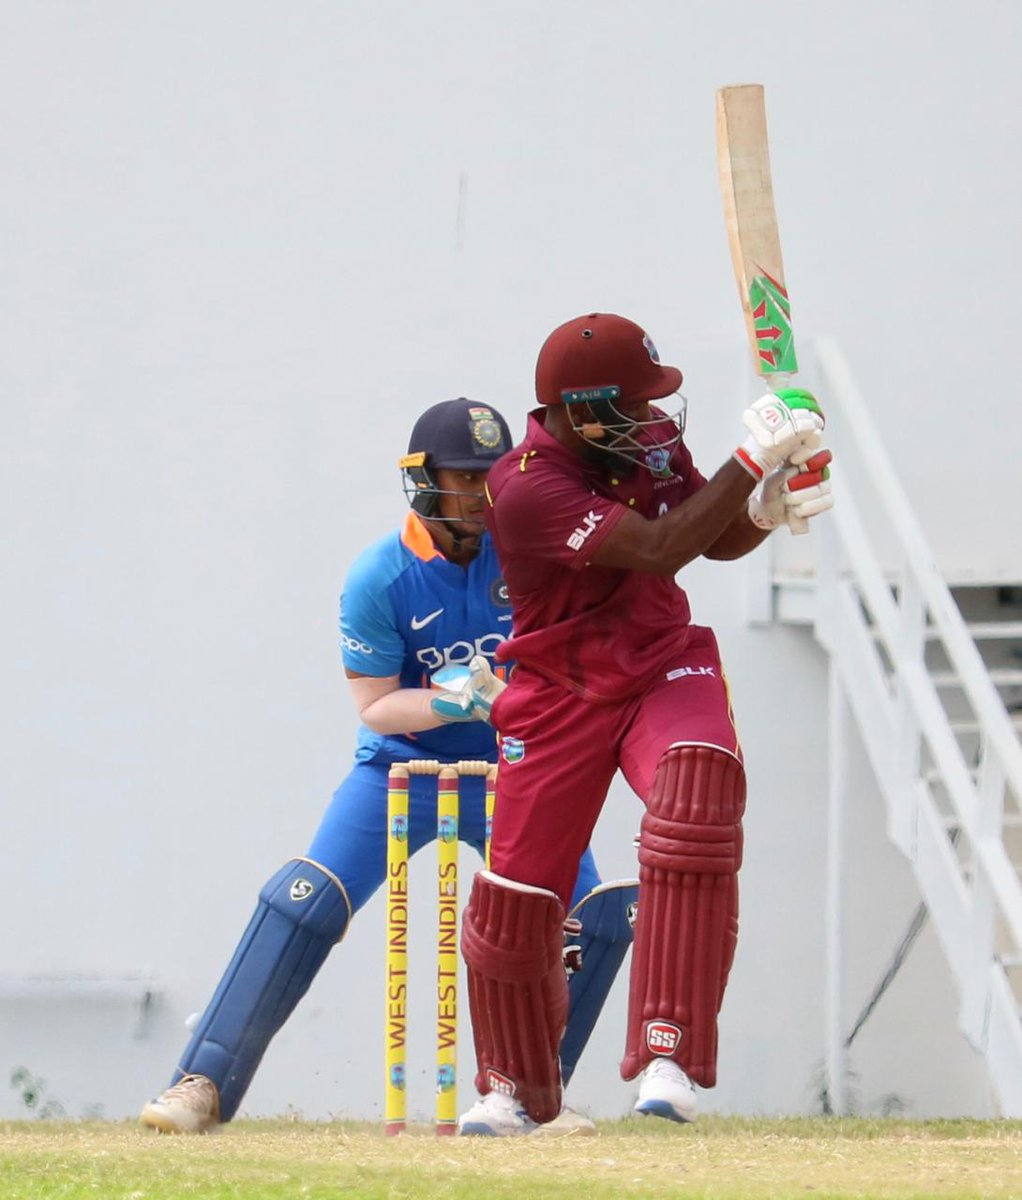 Windies Cricket on Twitter: